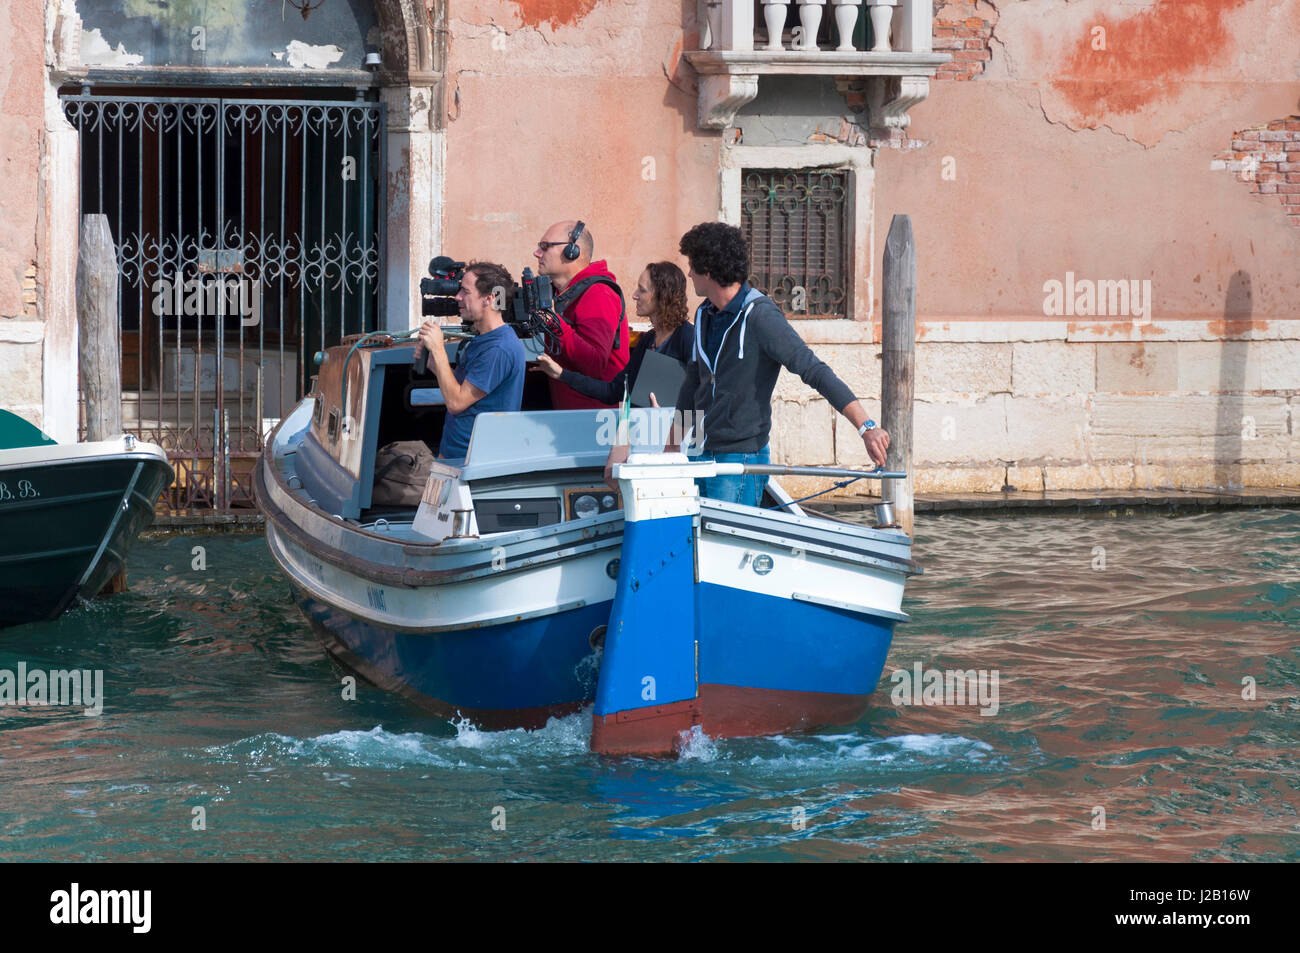 Filmcrew cameraman sound engineer producer working in Venice, Italy - Stock Image